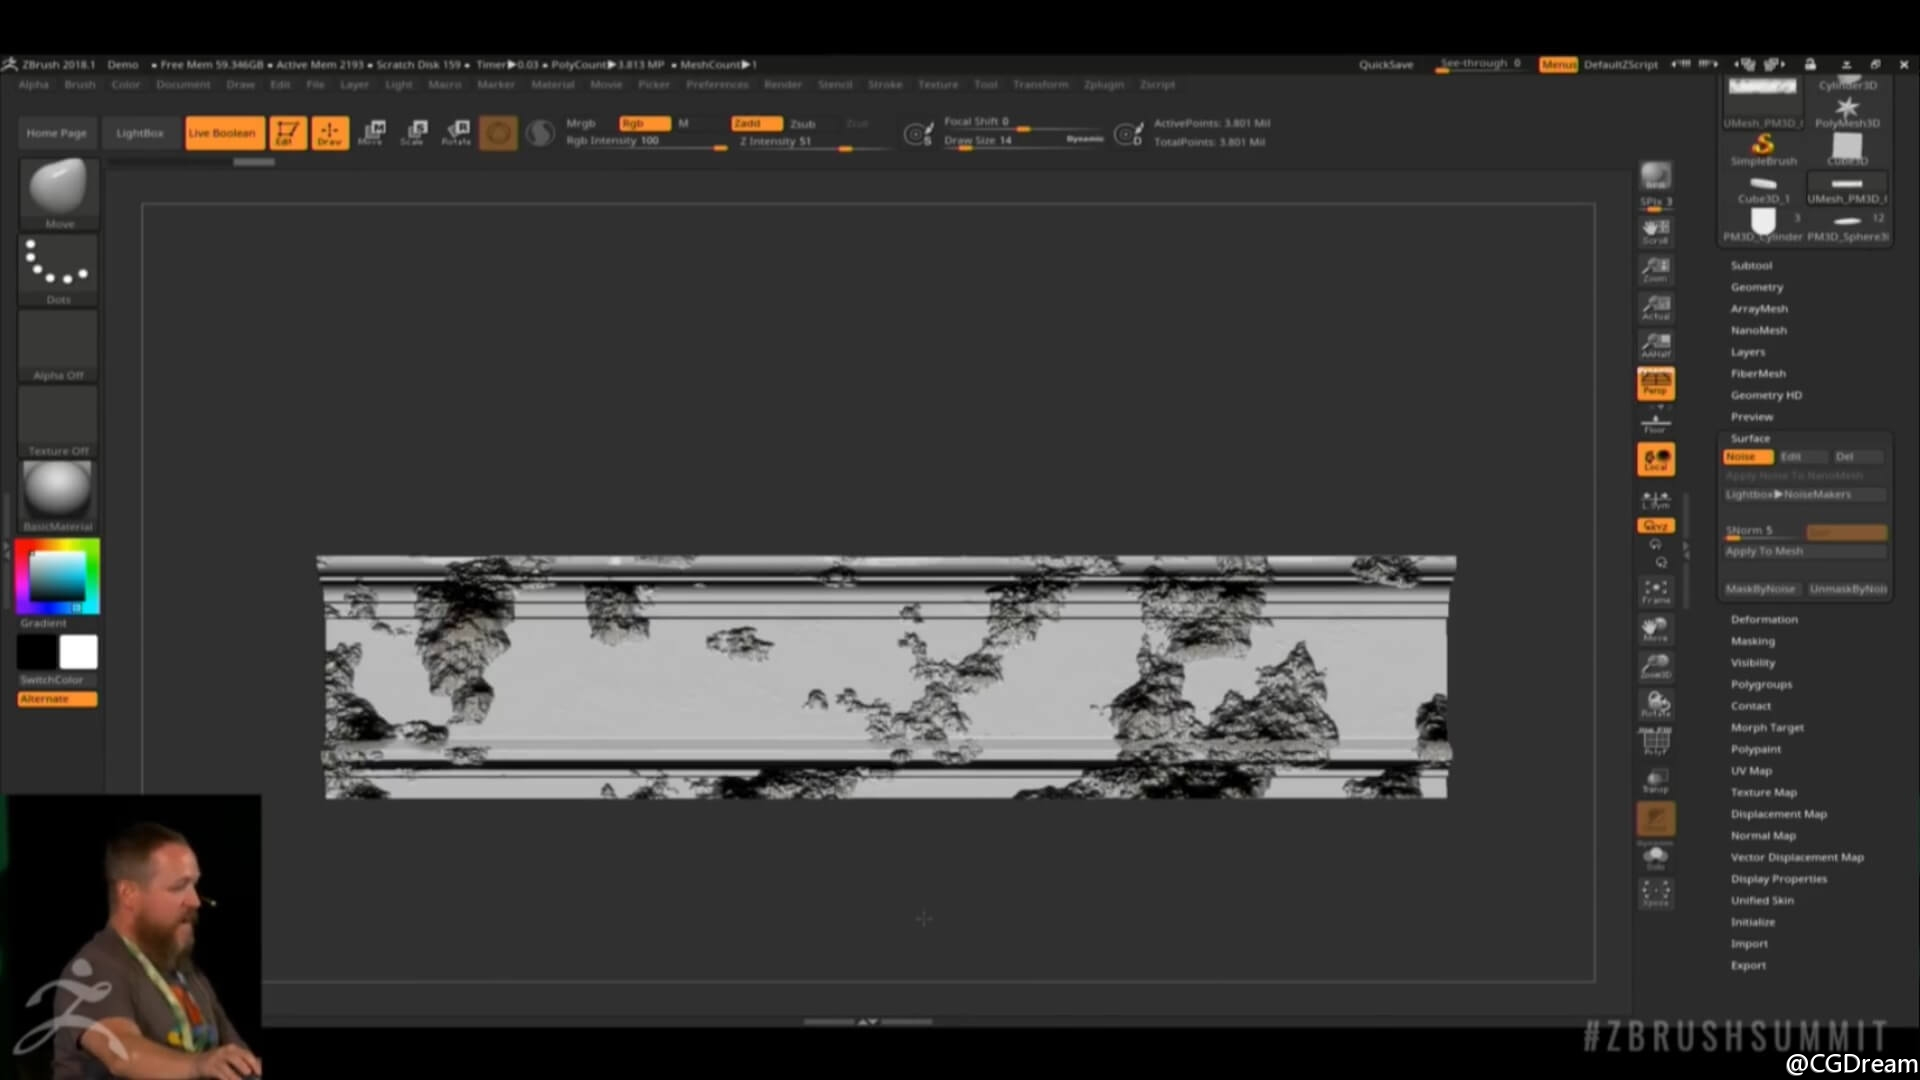 ZBrush制作产品级角色模型及建筑场景模型教程 - Production Character & Environment Workflows in ZBrus ...